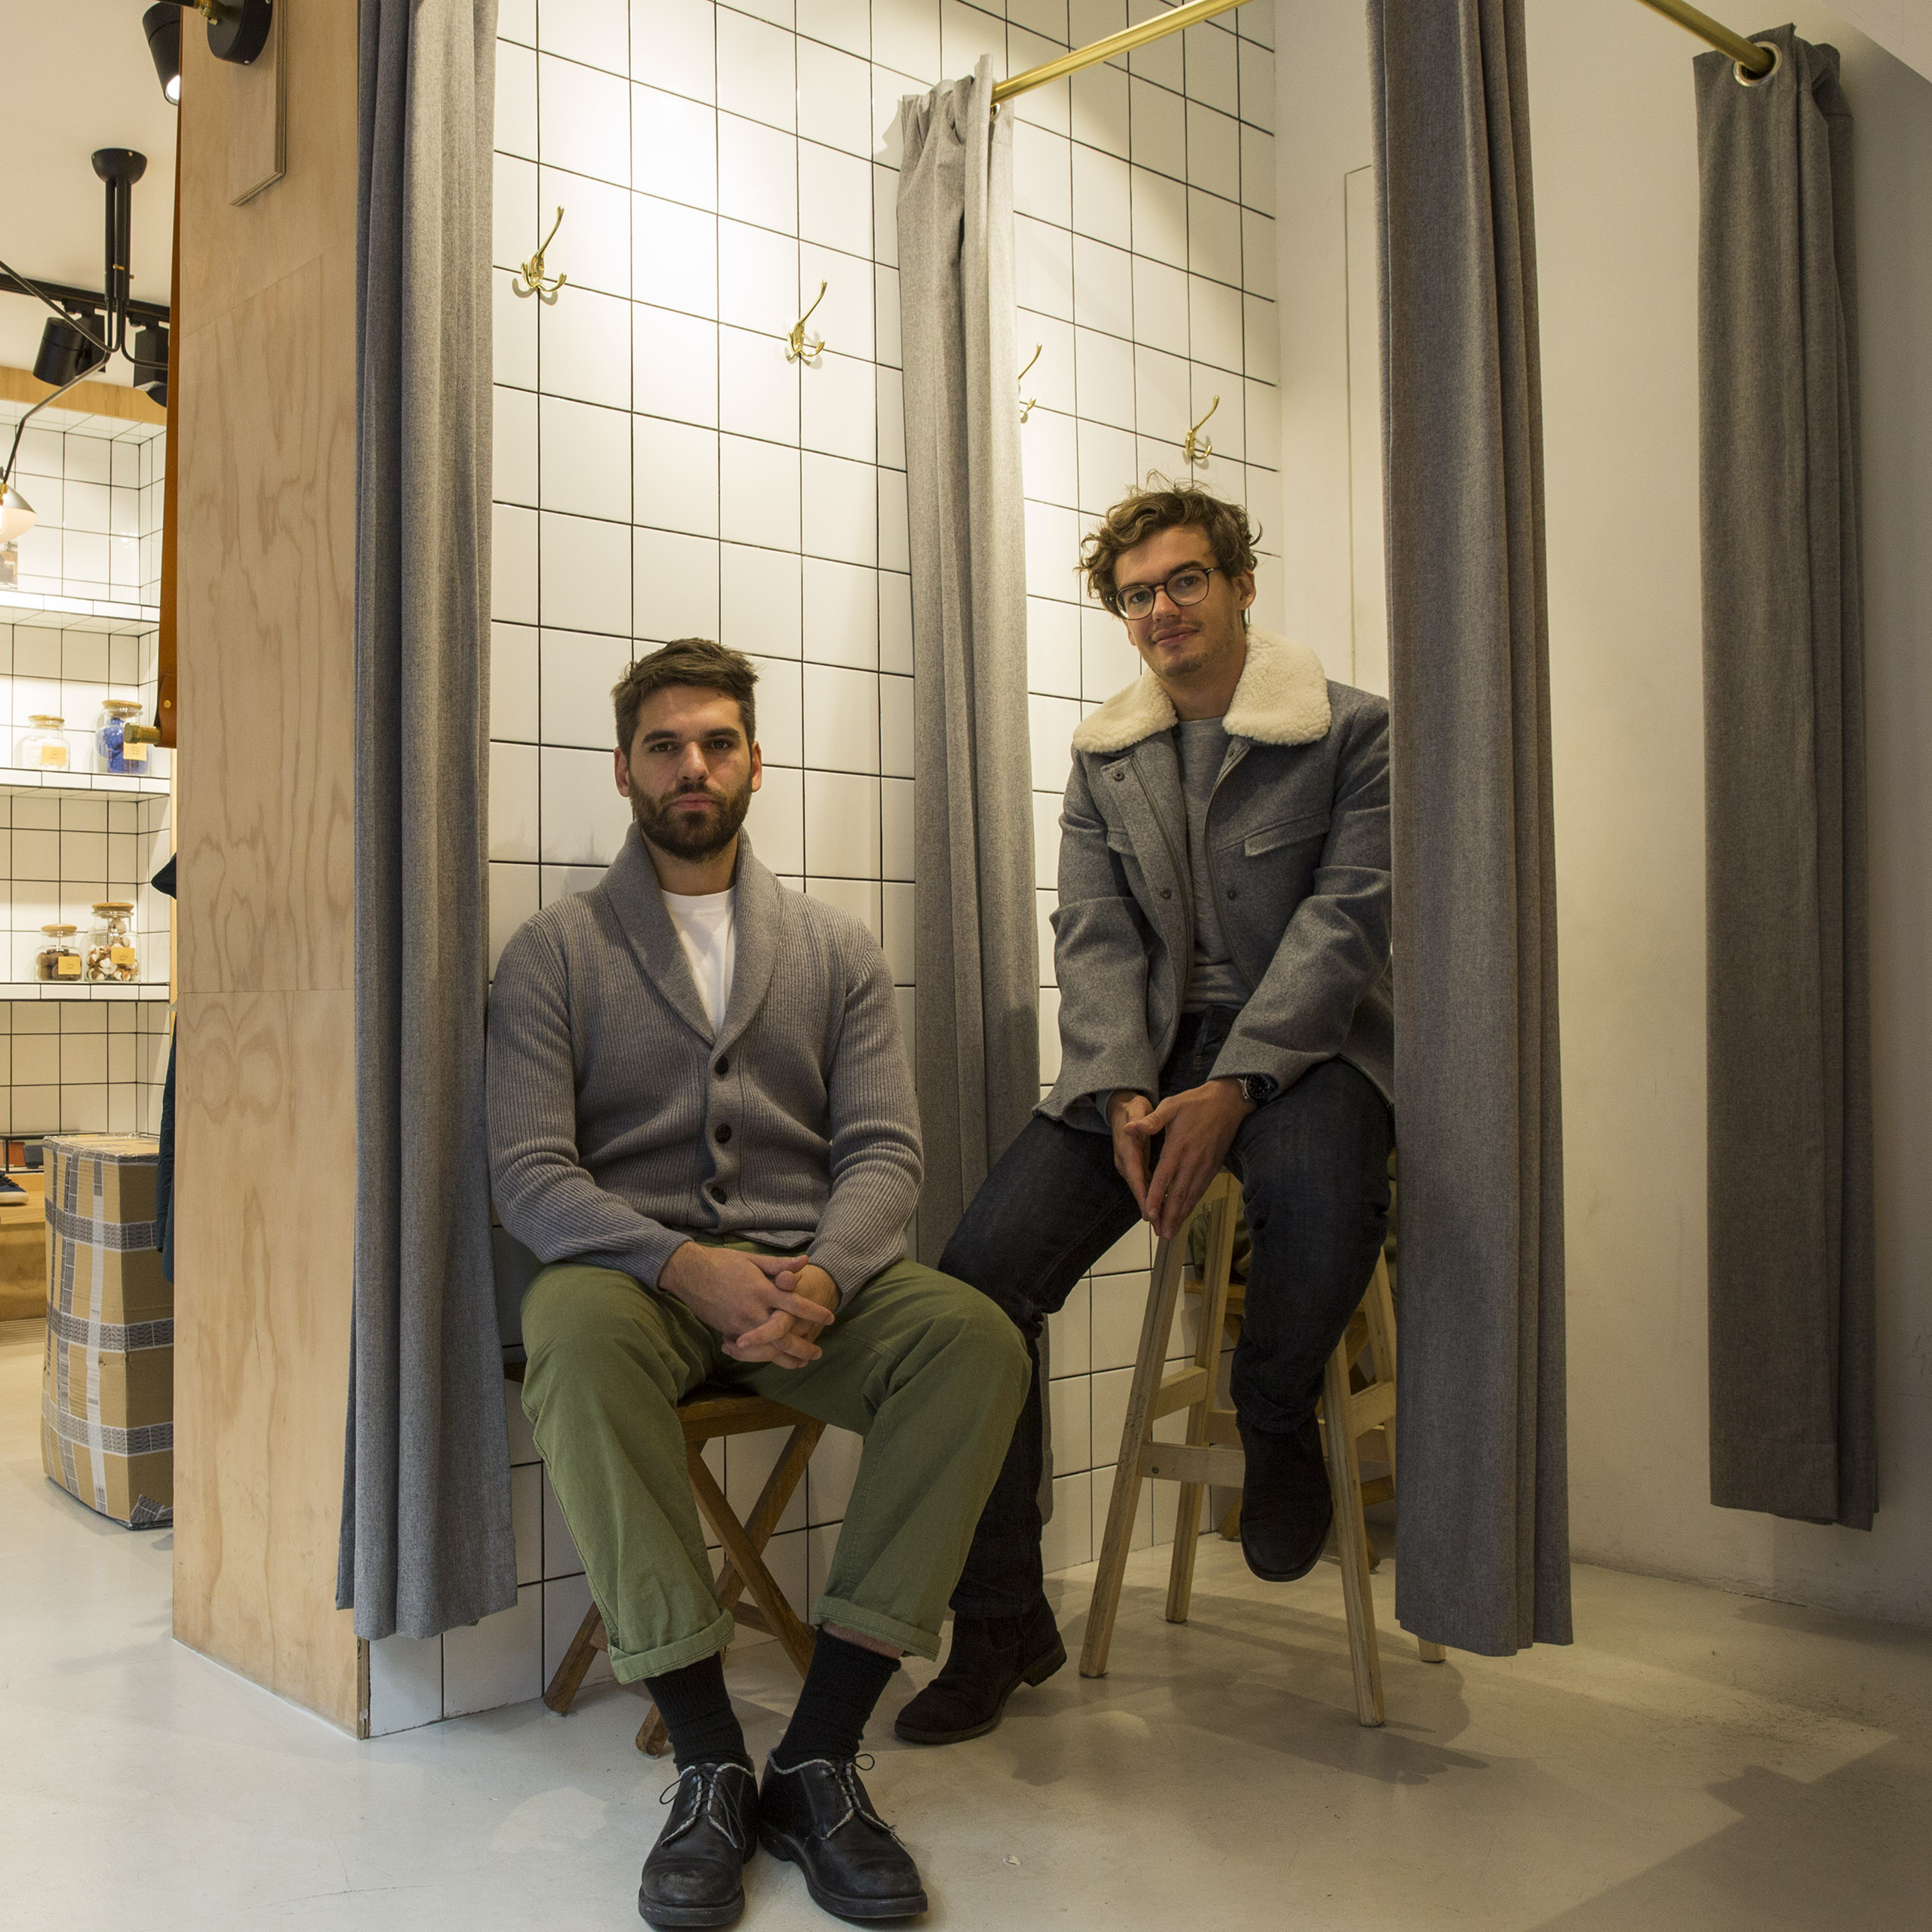 Paris – Geoffrey, Inside a Men's Fashion Startup 5